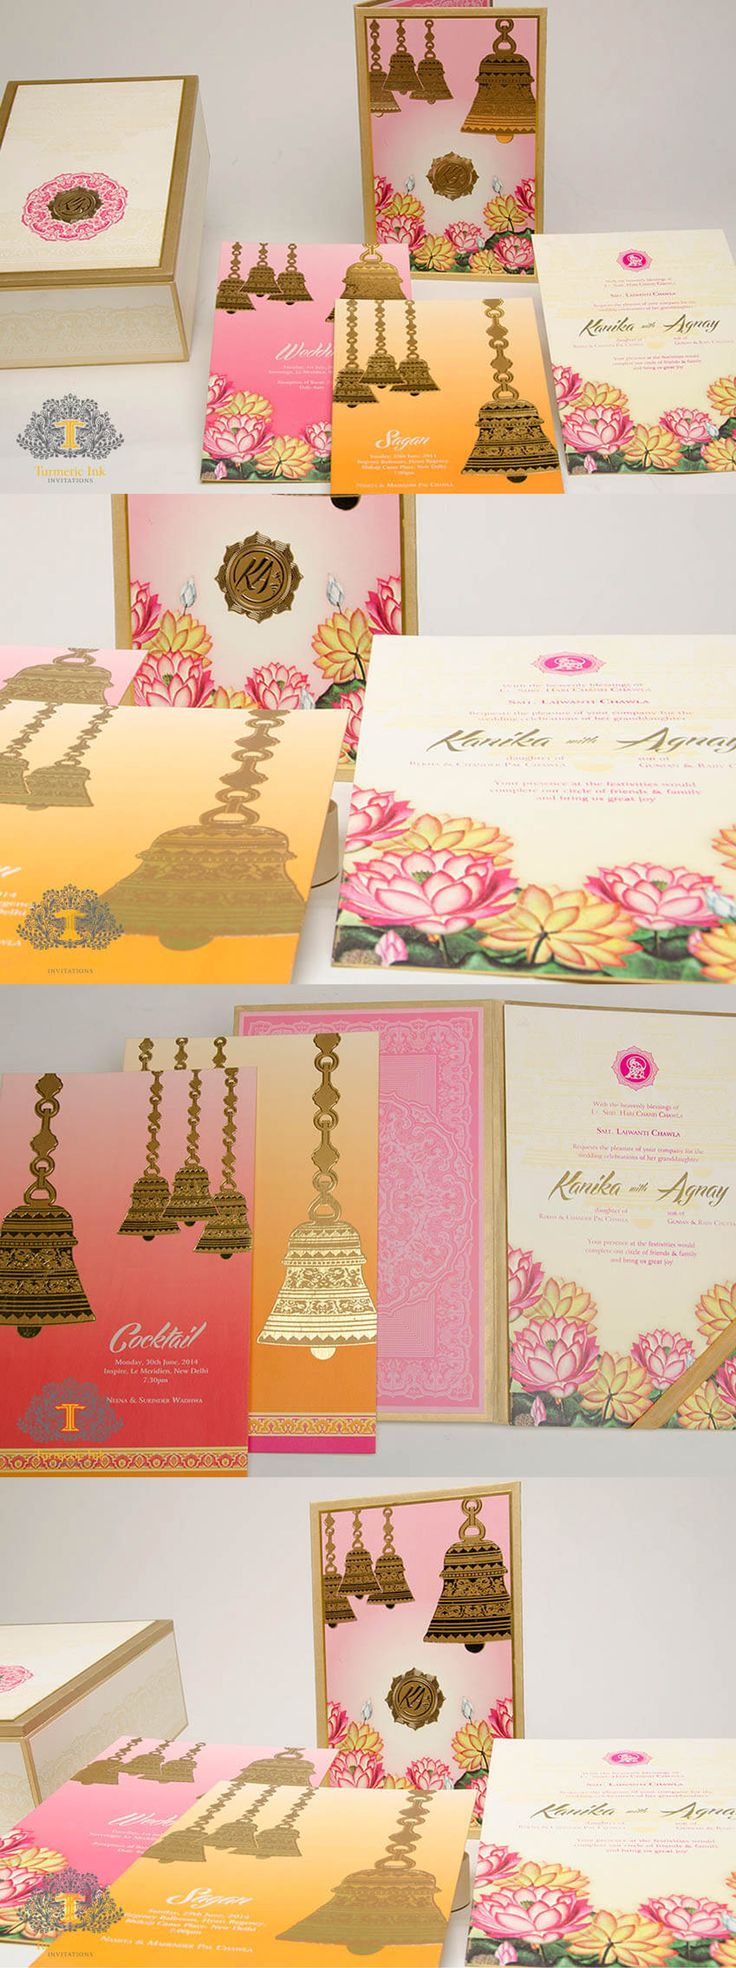 wedding card design software for android%0A TurmericInk offers unique and exceptional Indian Wedding Invitation Cards  Design and Printing for every religion and tradition